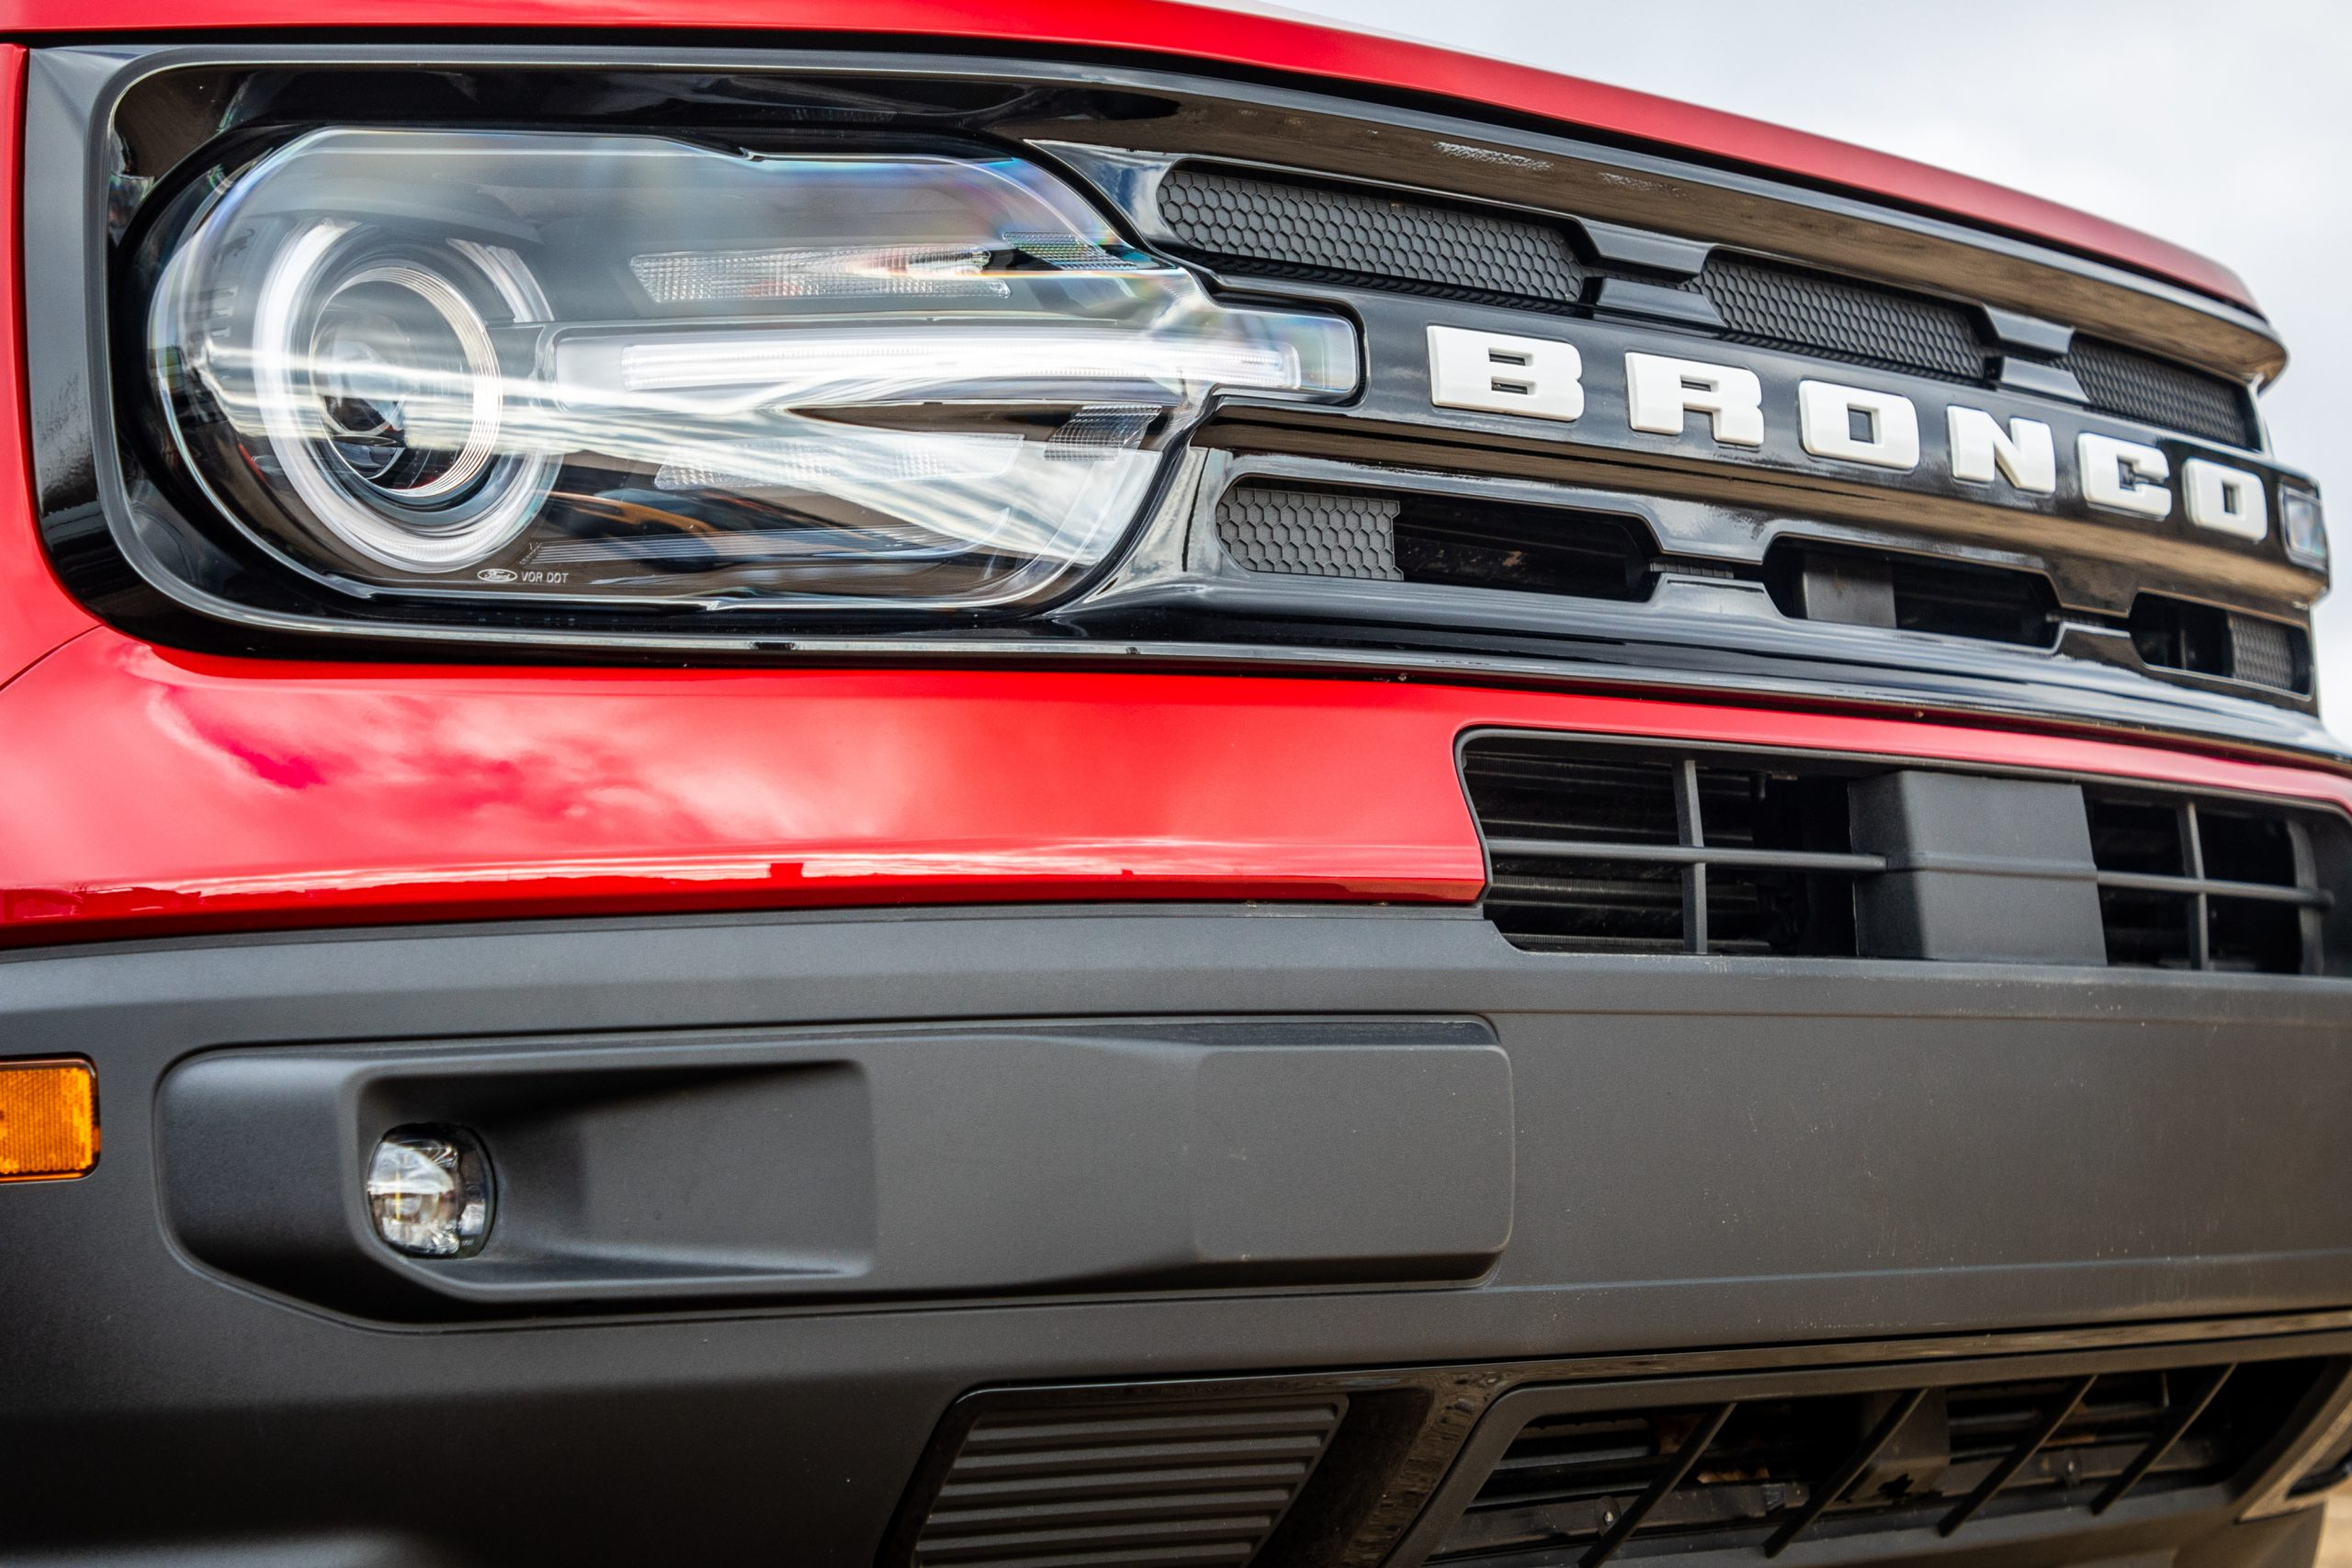 2021 Bronco Sport front headlight and grille